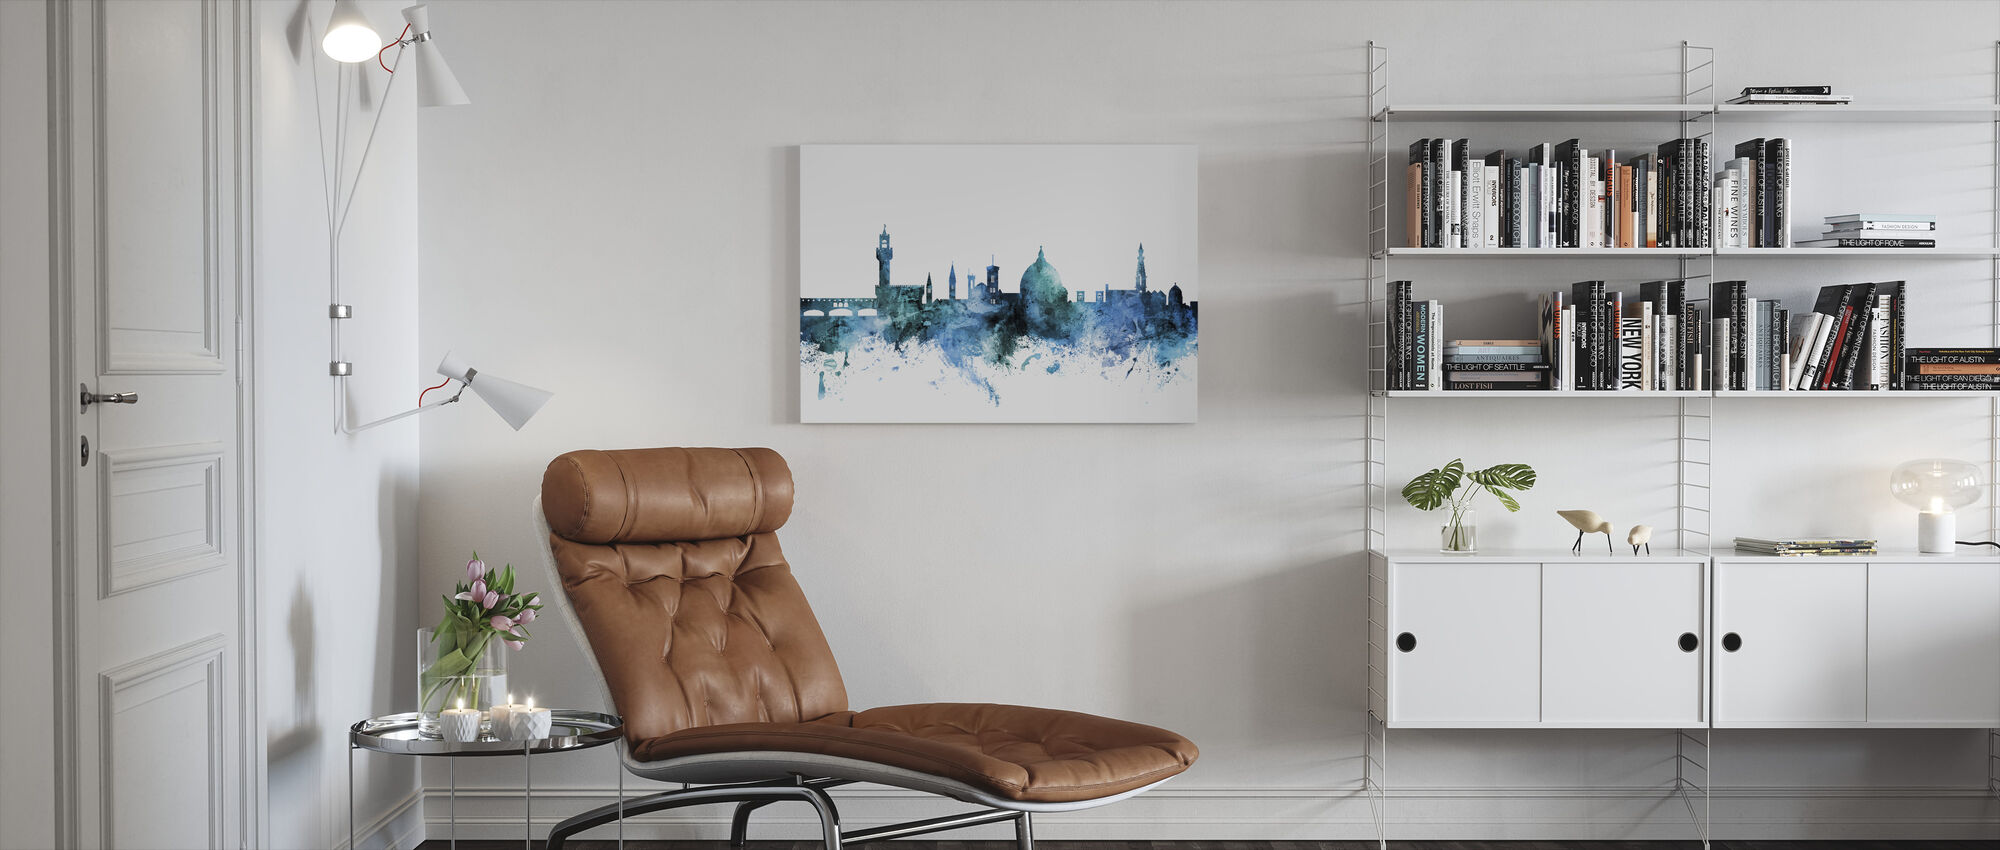 Florence Italy Skyline - Canvas print - Living Room